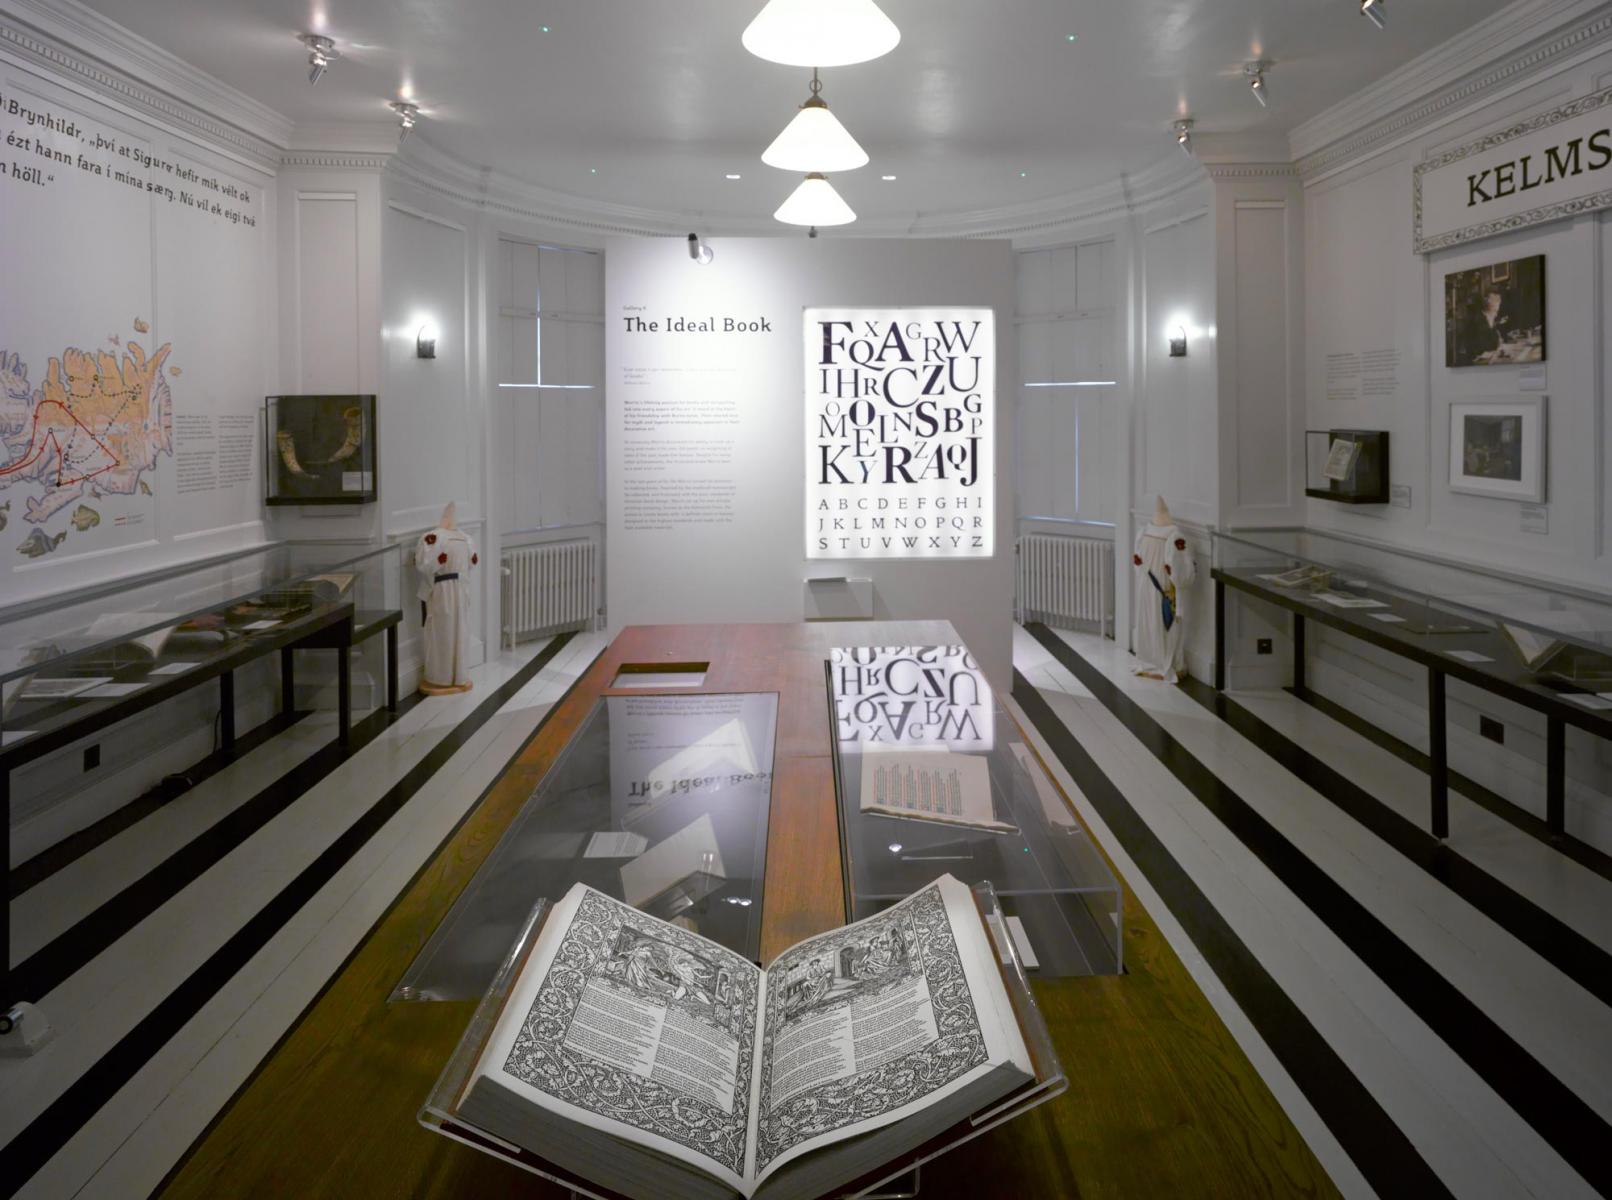 William Morris Gallery, Walthamstow, London - The ideal Book